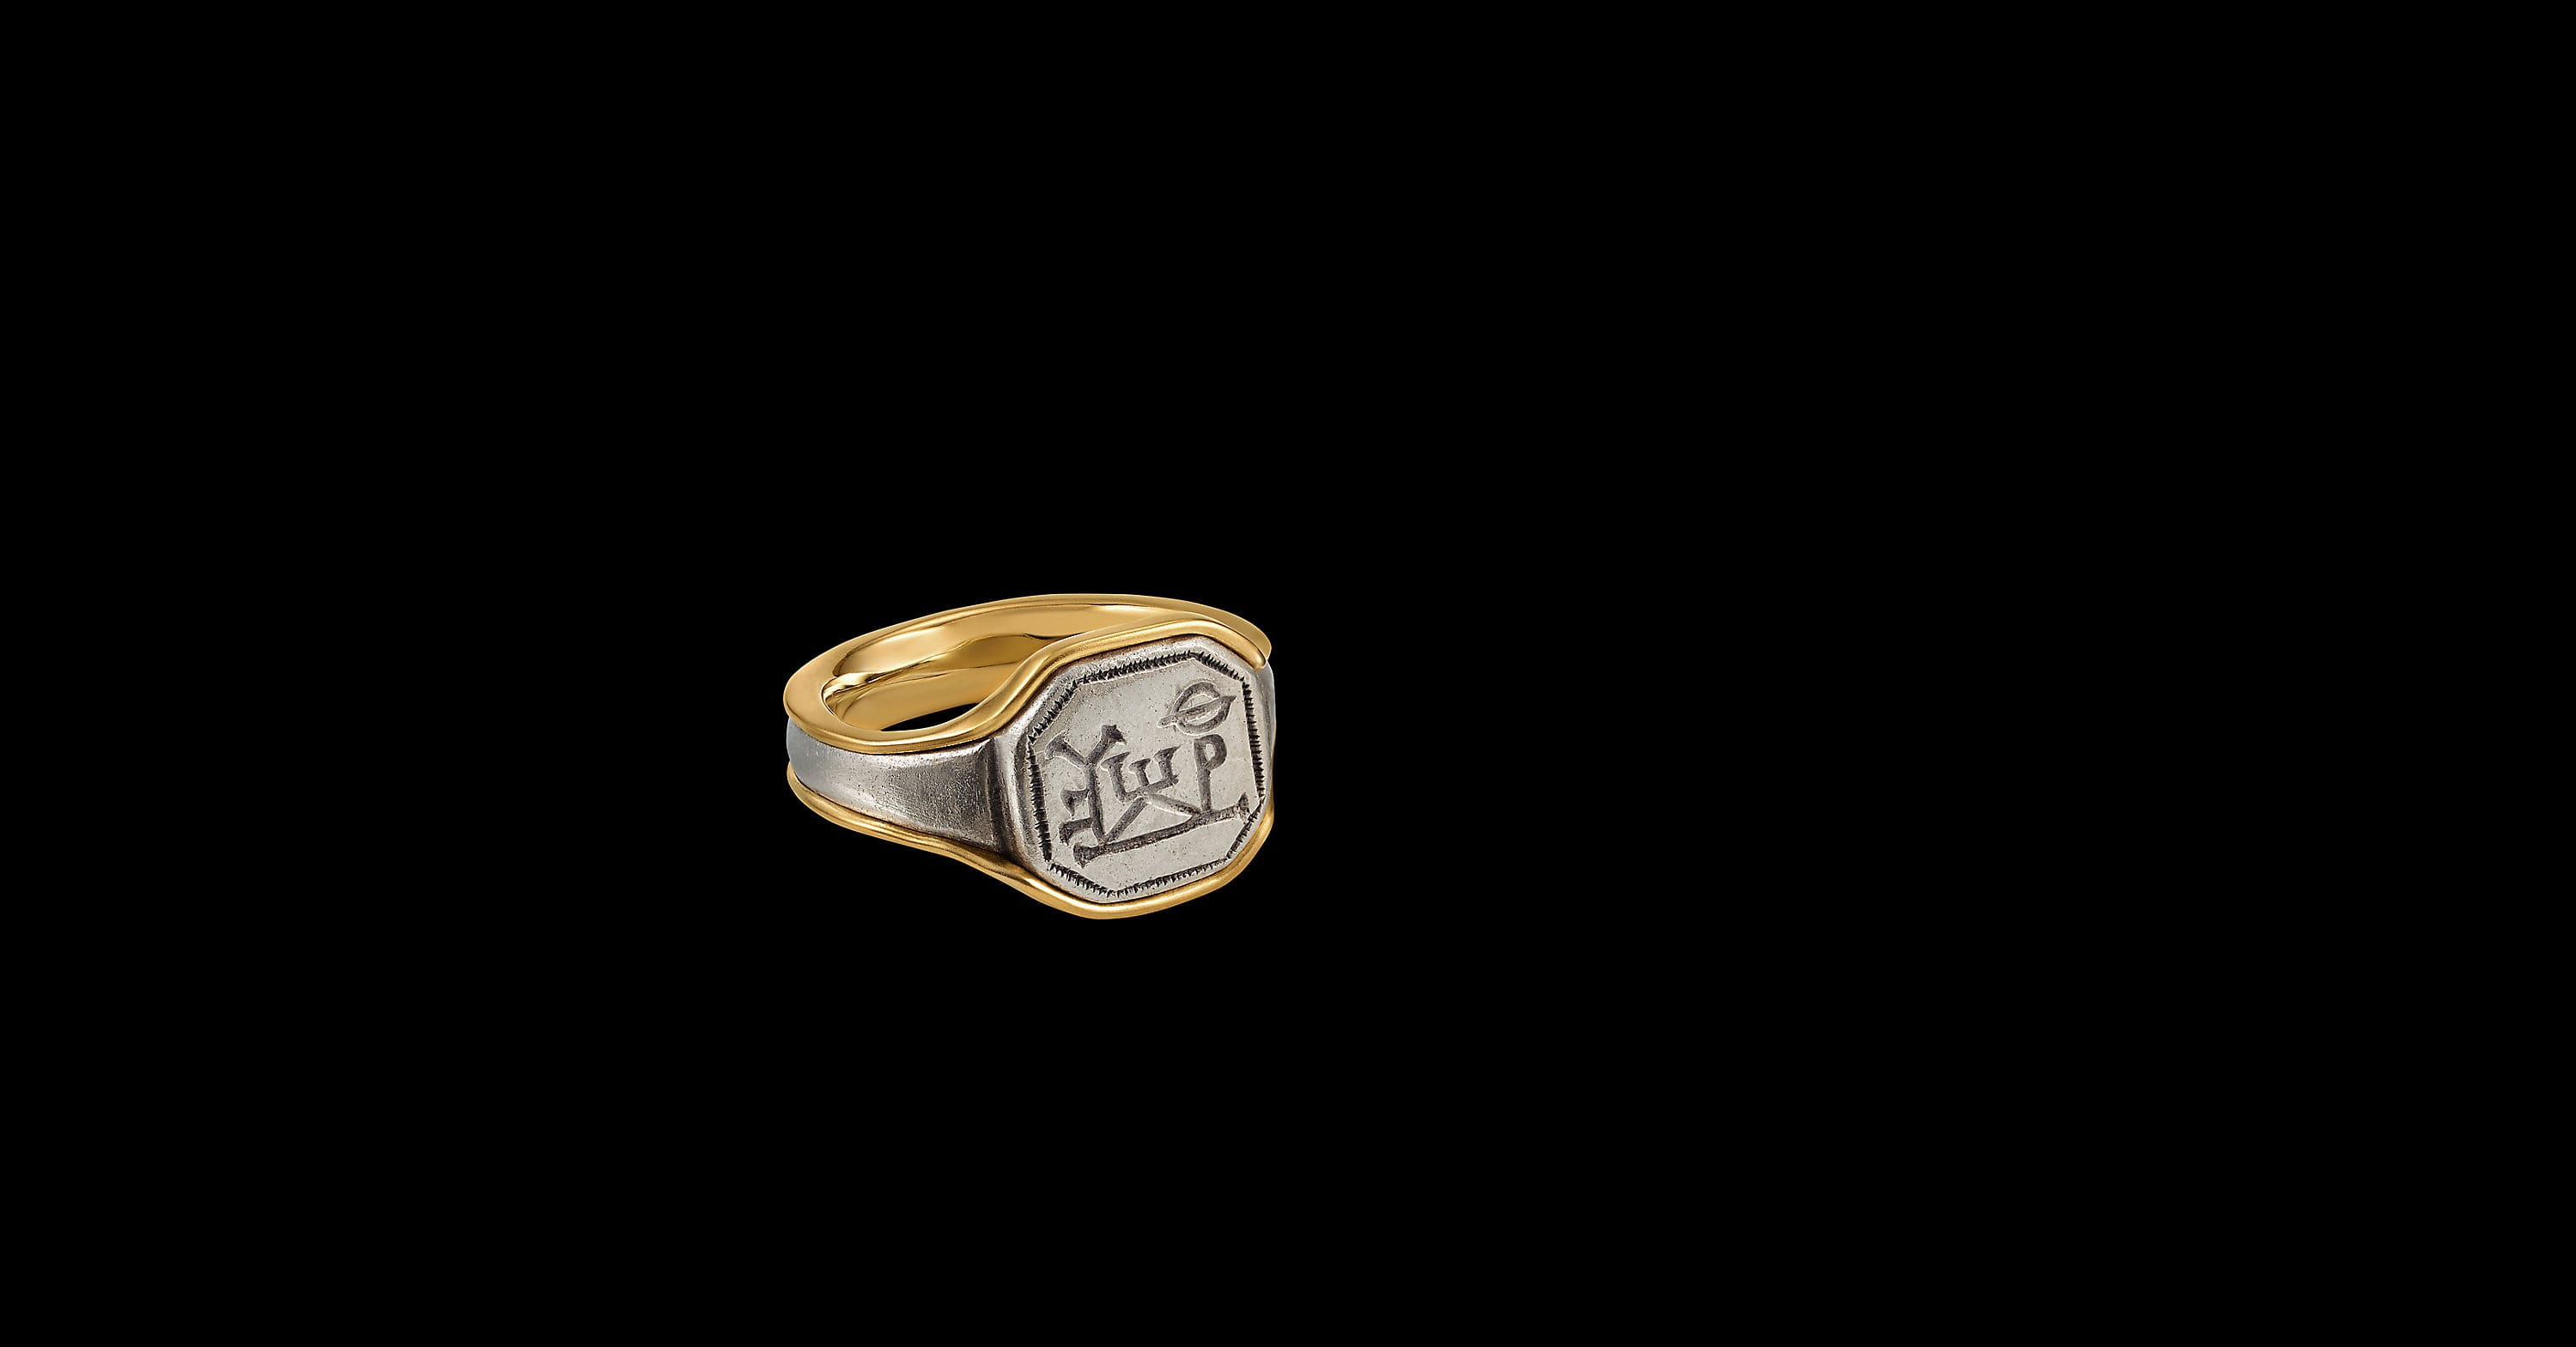 Ey Signature Inscribed Signet Ring with 22K Yellow Gold